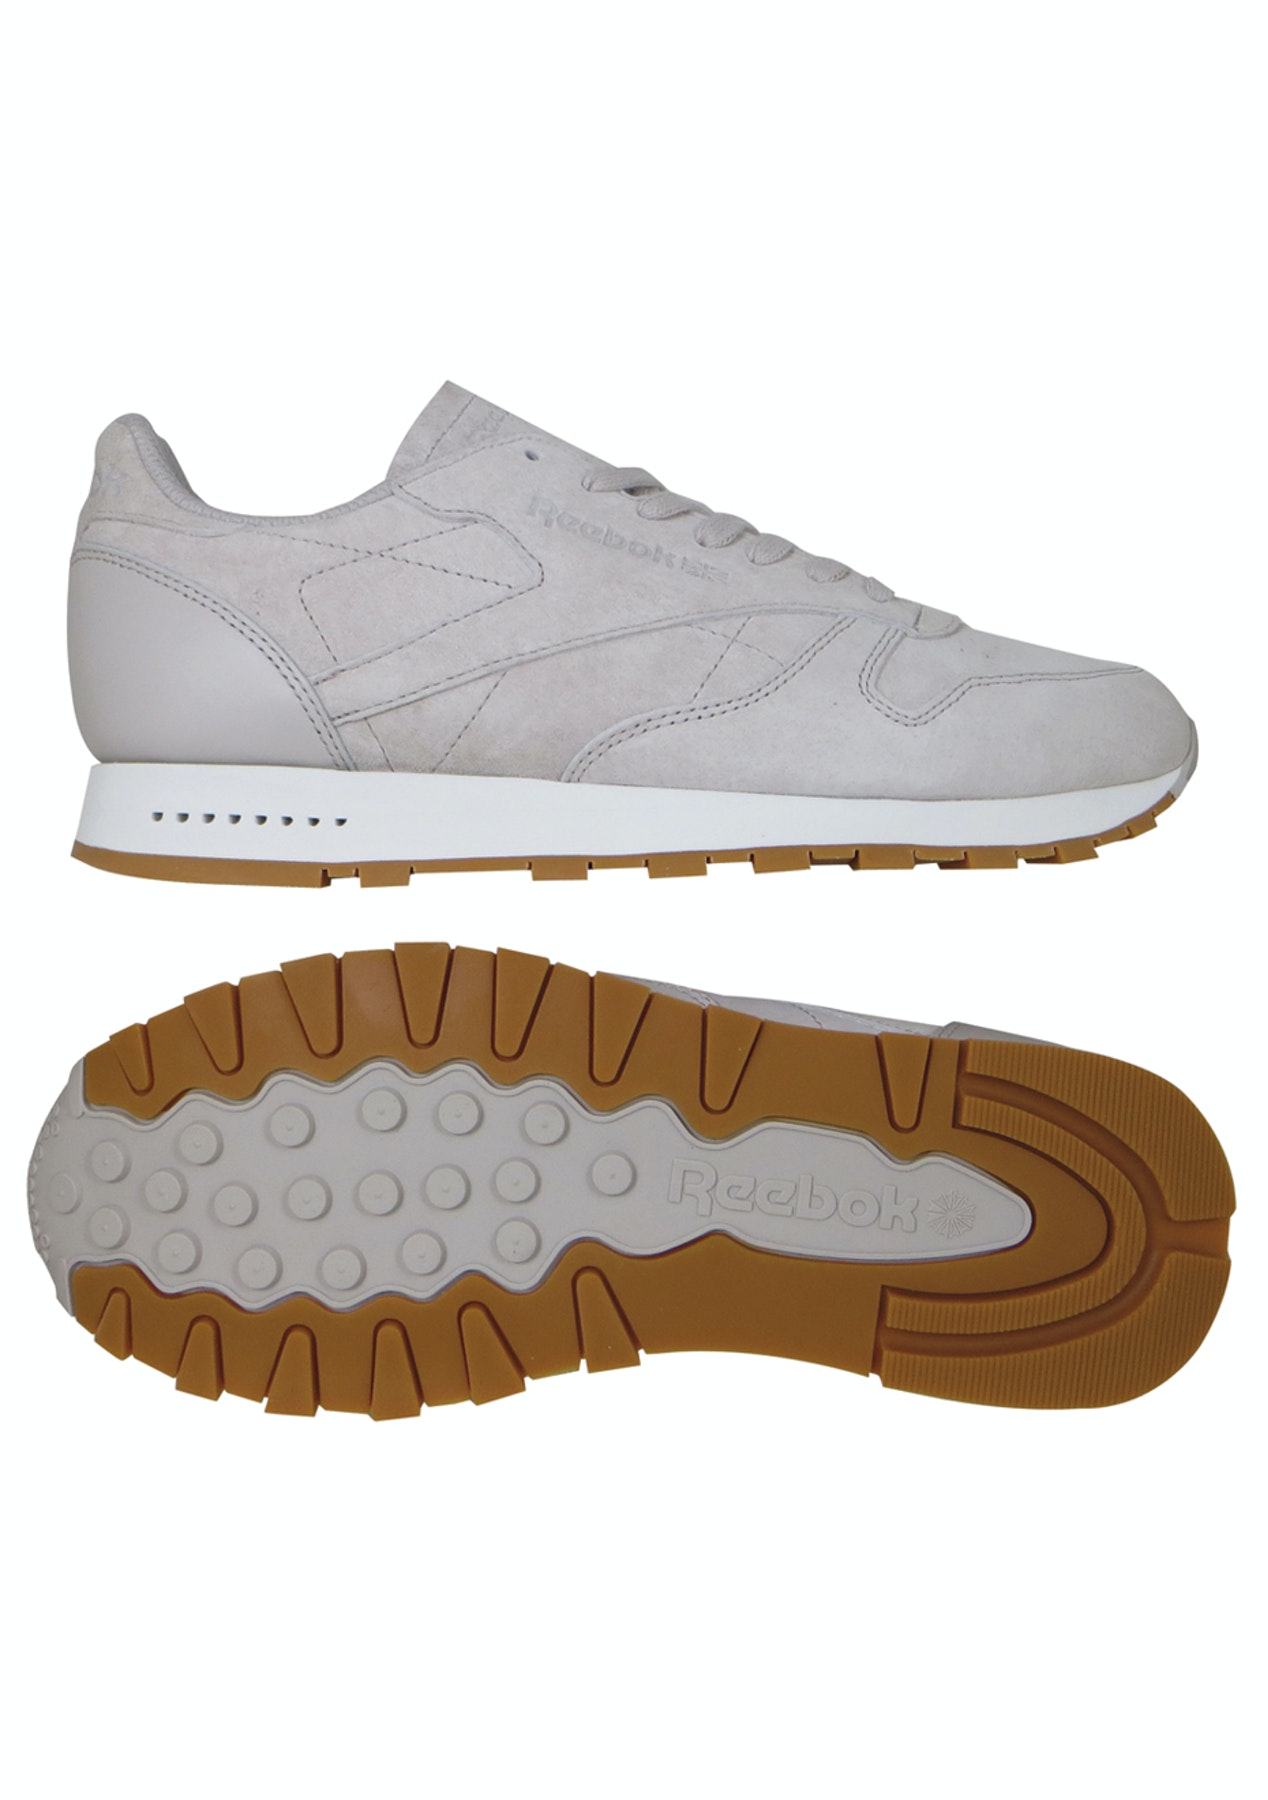 88758e1c973cb2 Reebok Unisex - Classic Leather Sg Sand Stone Chalk-Gum - Shoes Outlet -  Onceit